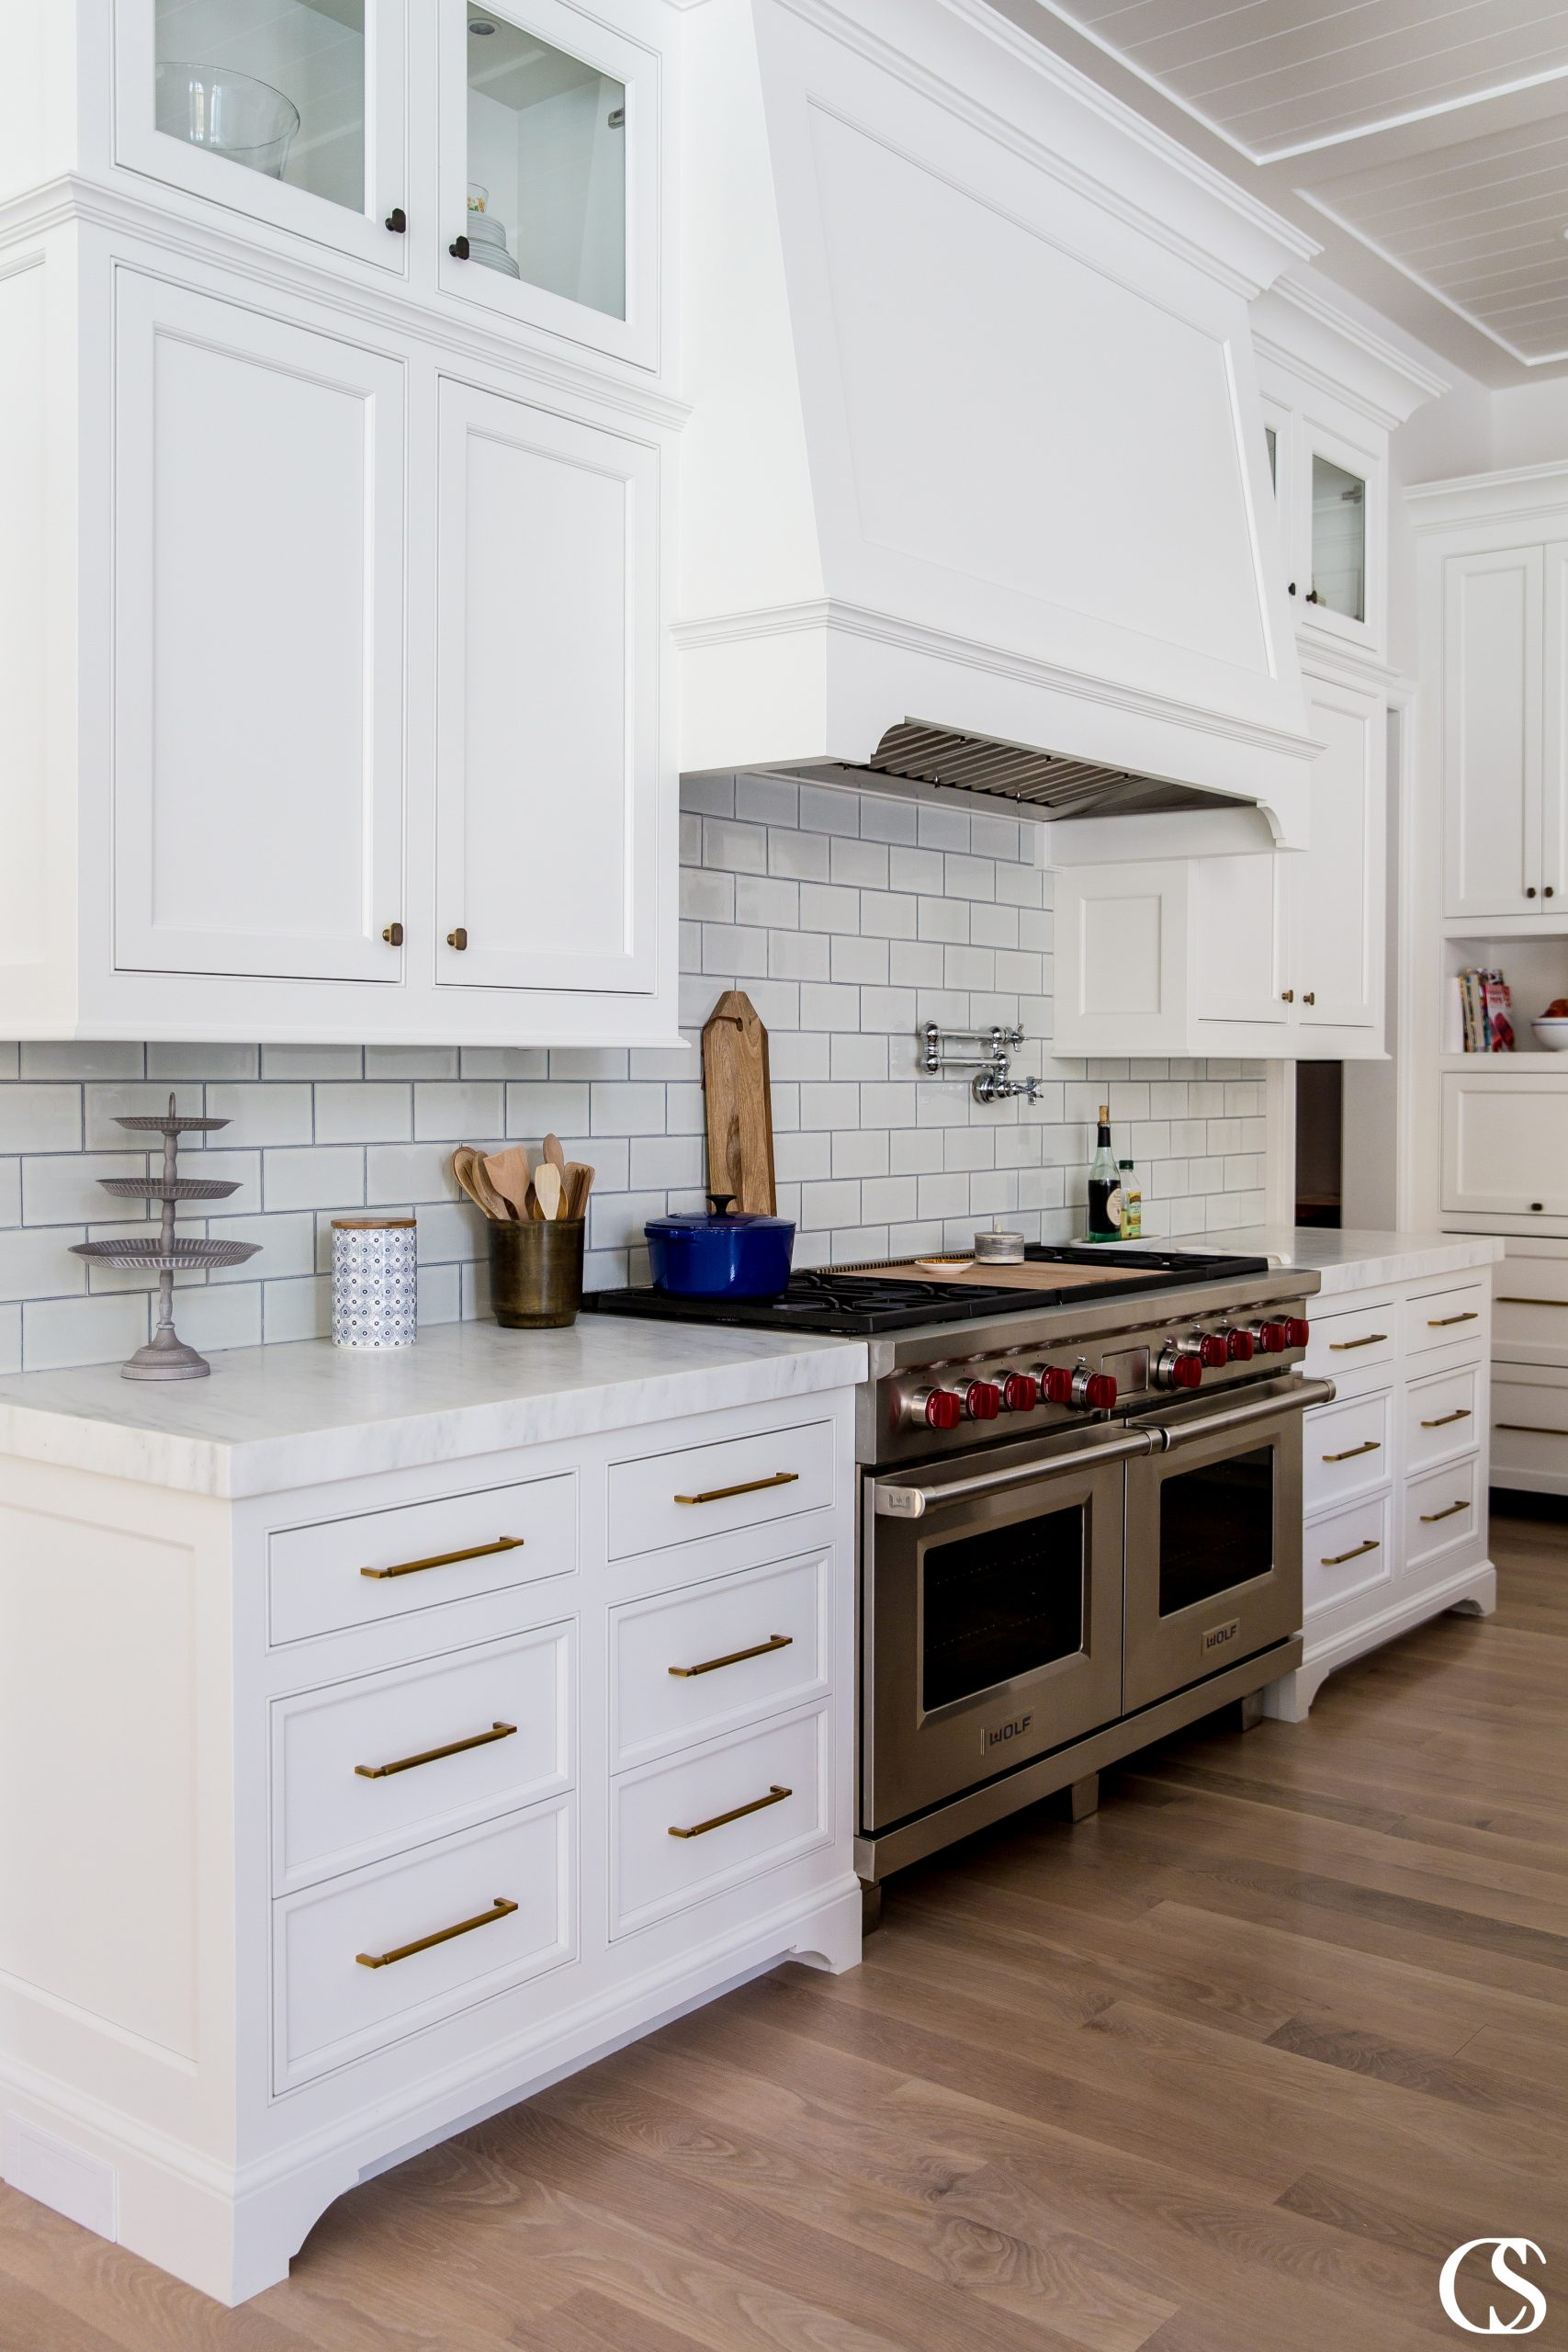 The best unique custom kitchen cabinets are those that have flawless functionality and look beautiful simultaneously.